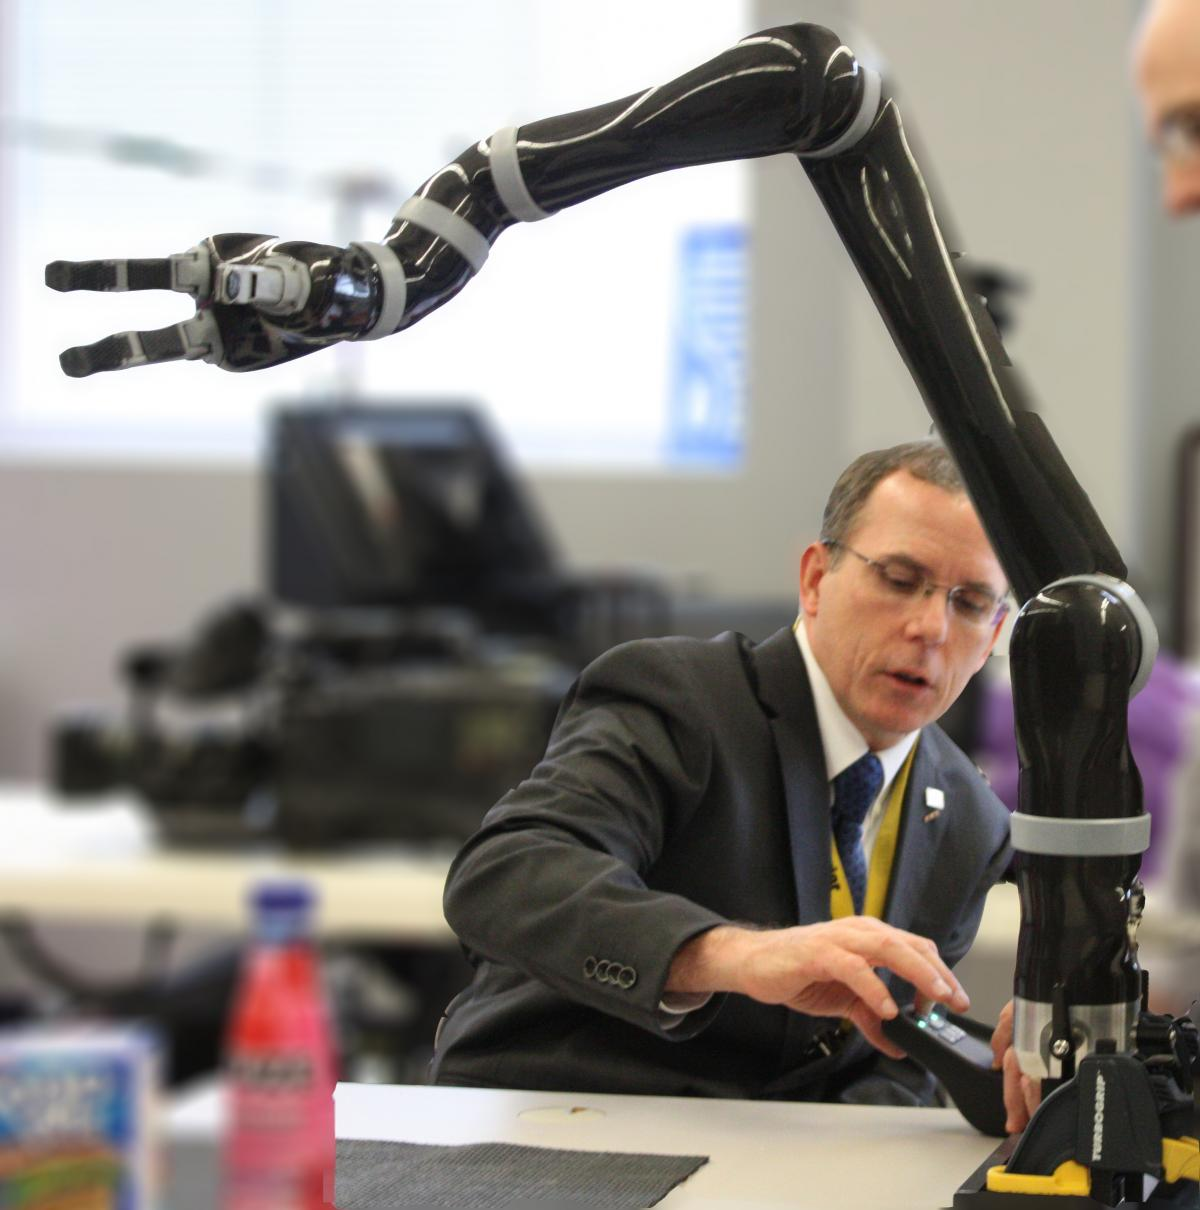 Man working with a robot arm